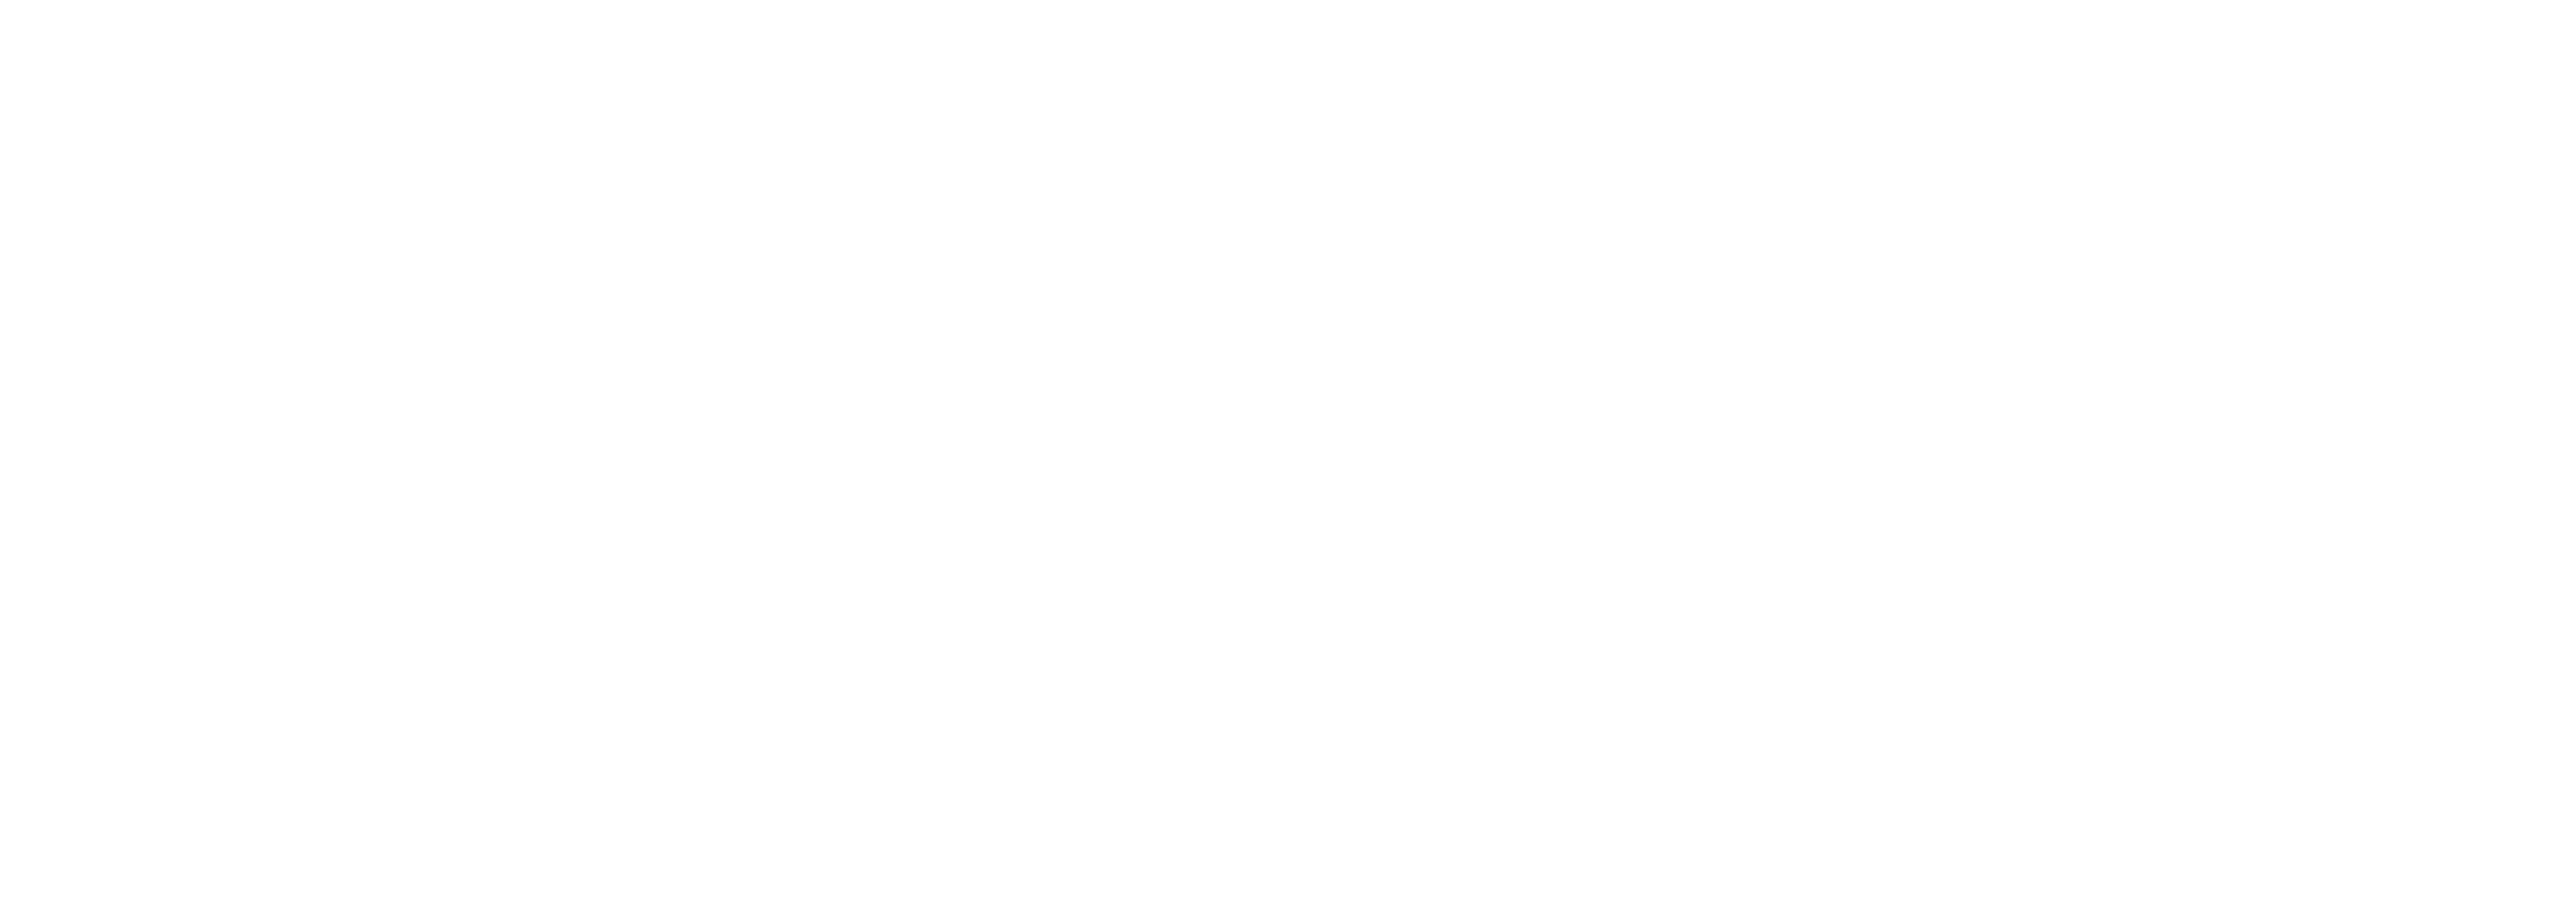 Trend Following Traders Community